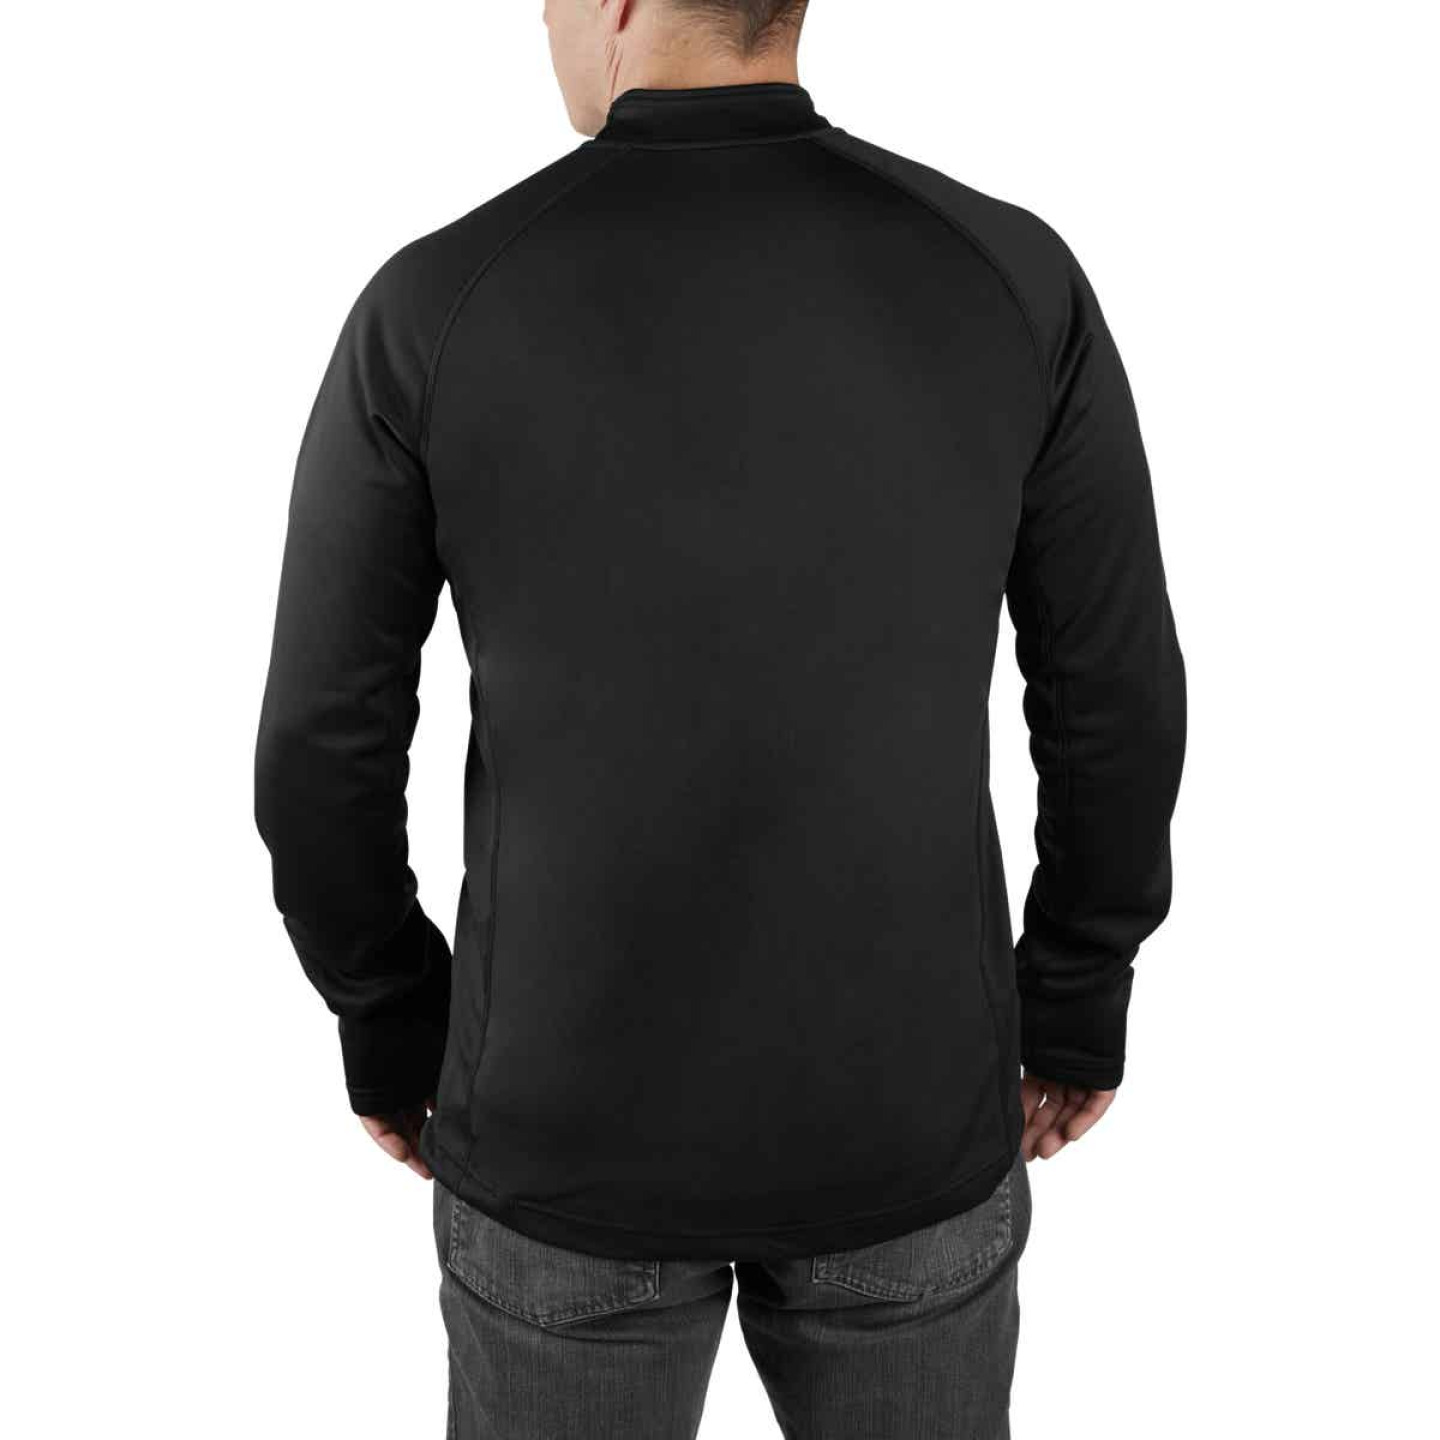 Milwaukee Workskin XL Black Heated Midweight Base Layer Shirt Image 5